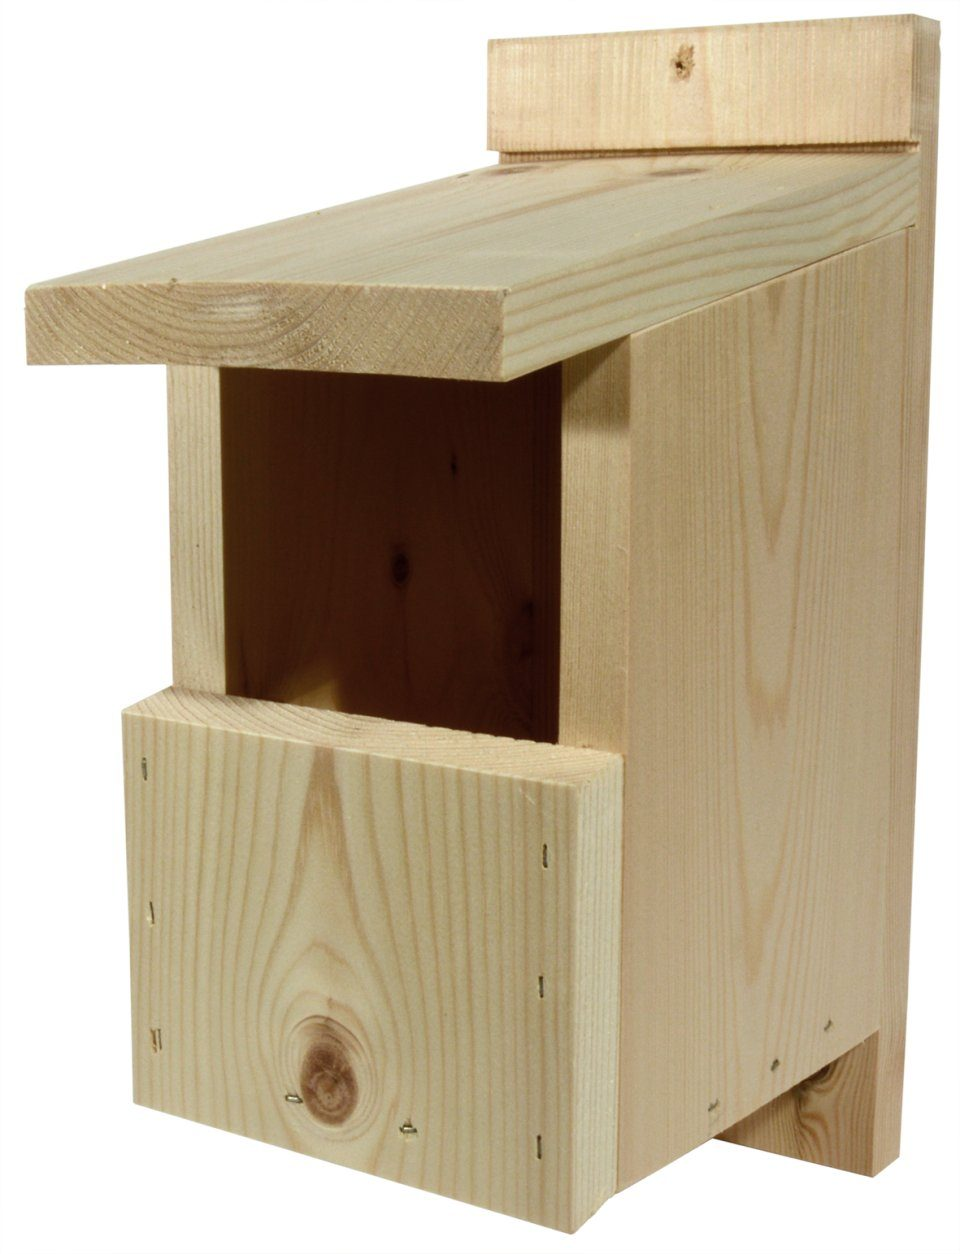 Pet Supplies Other Bird Supplies Three Birdhouse Bird Nest Breeding Box Wildlife World